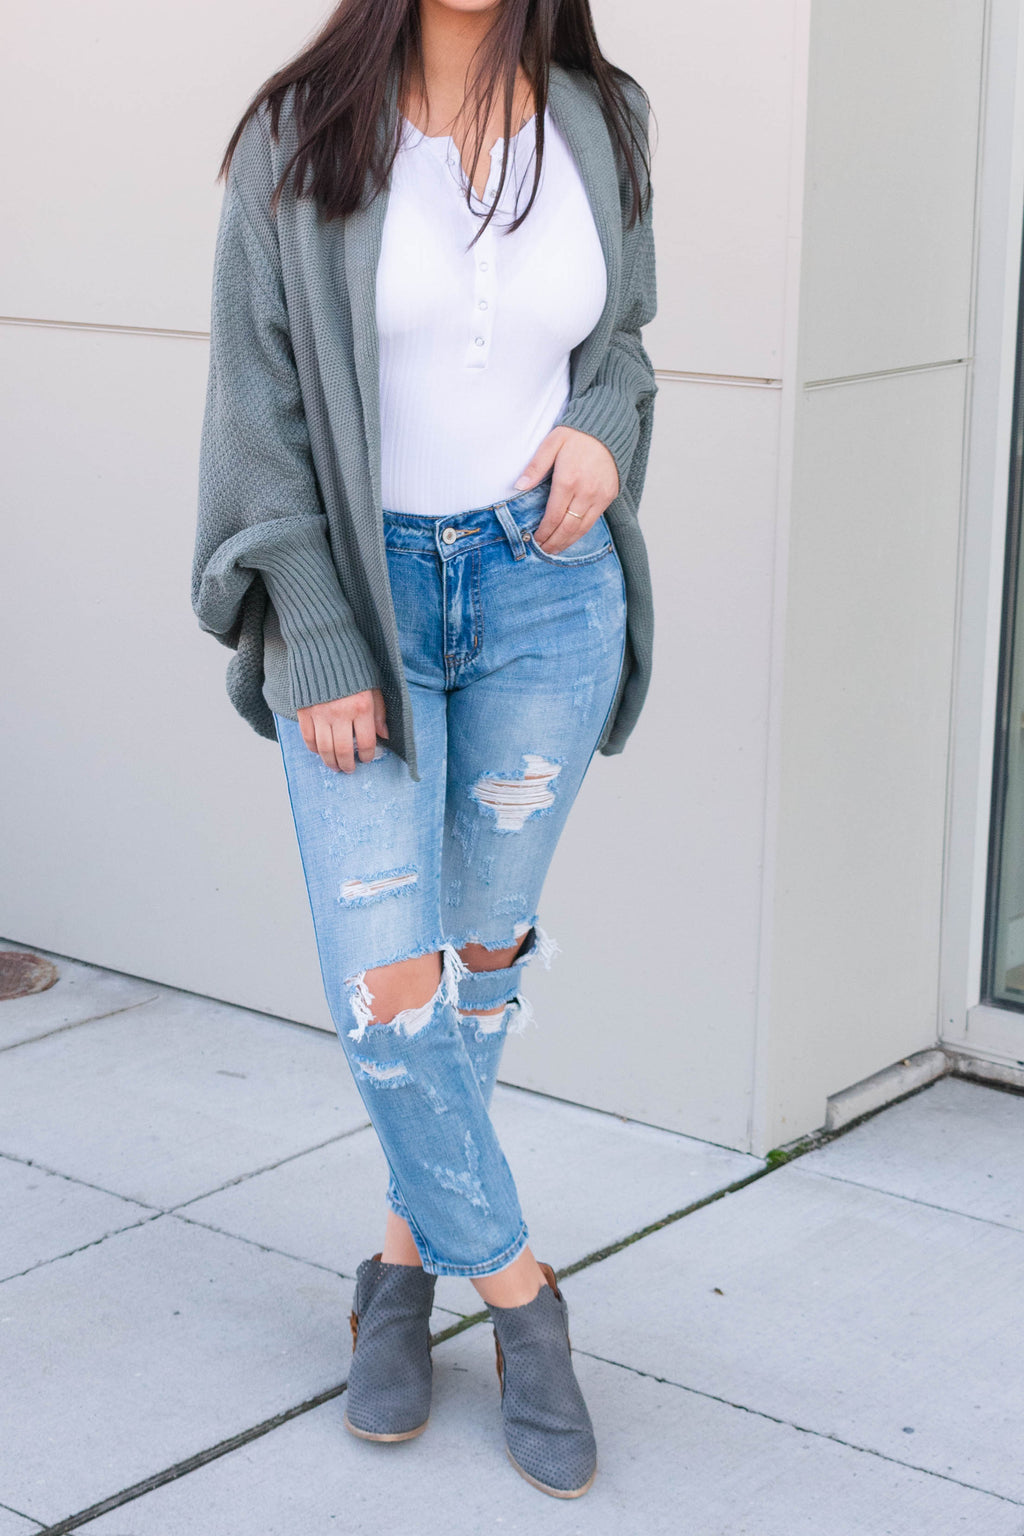 Sage Green Batwing cardigan, worn with distressed cropped denim jeans - Boutique Bleu